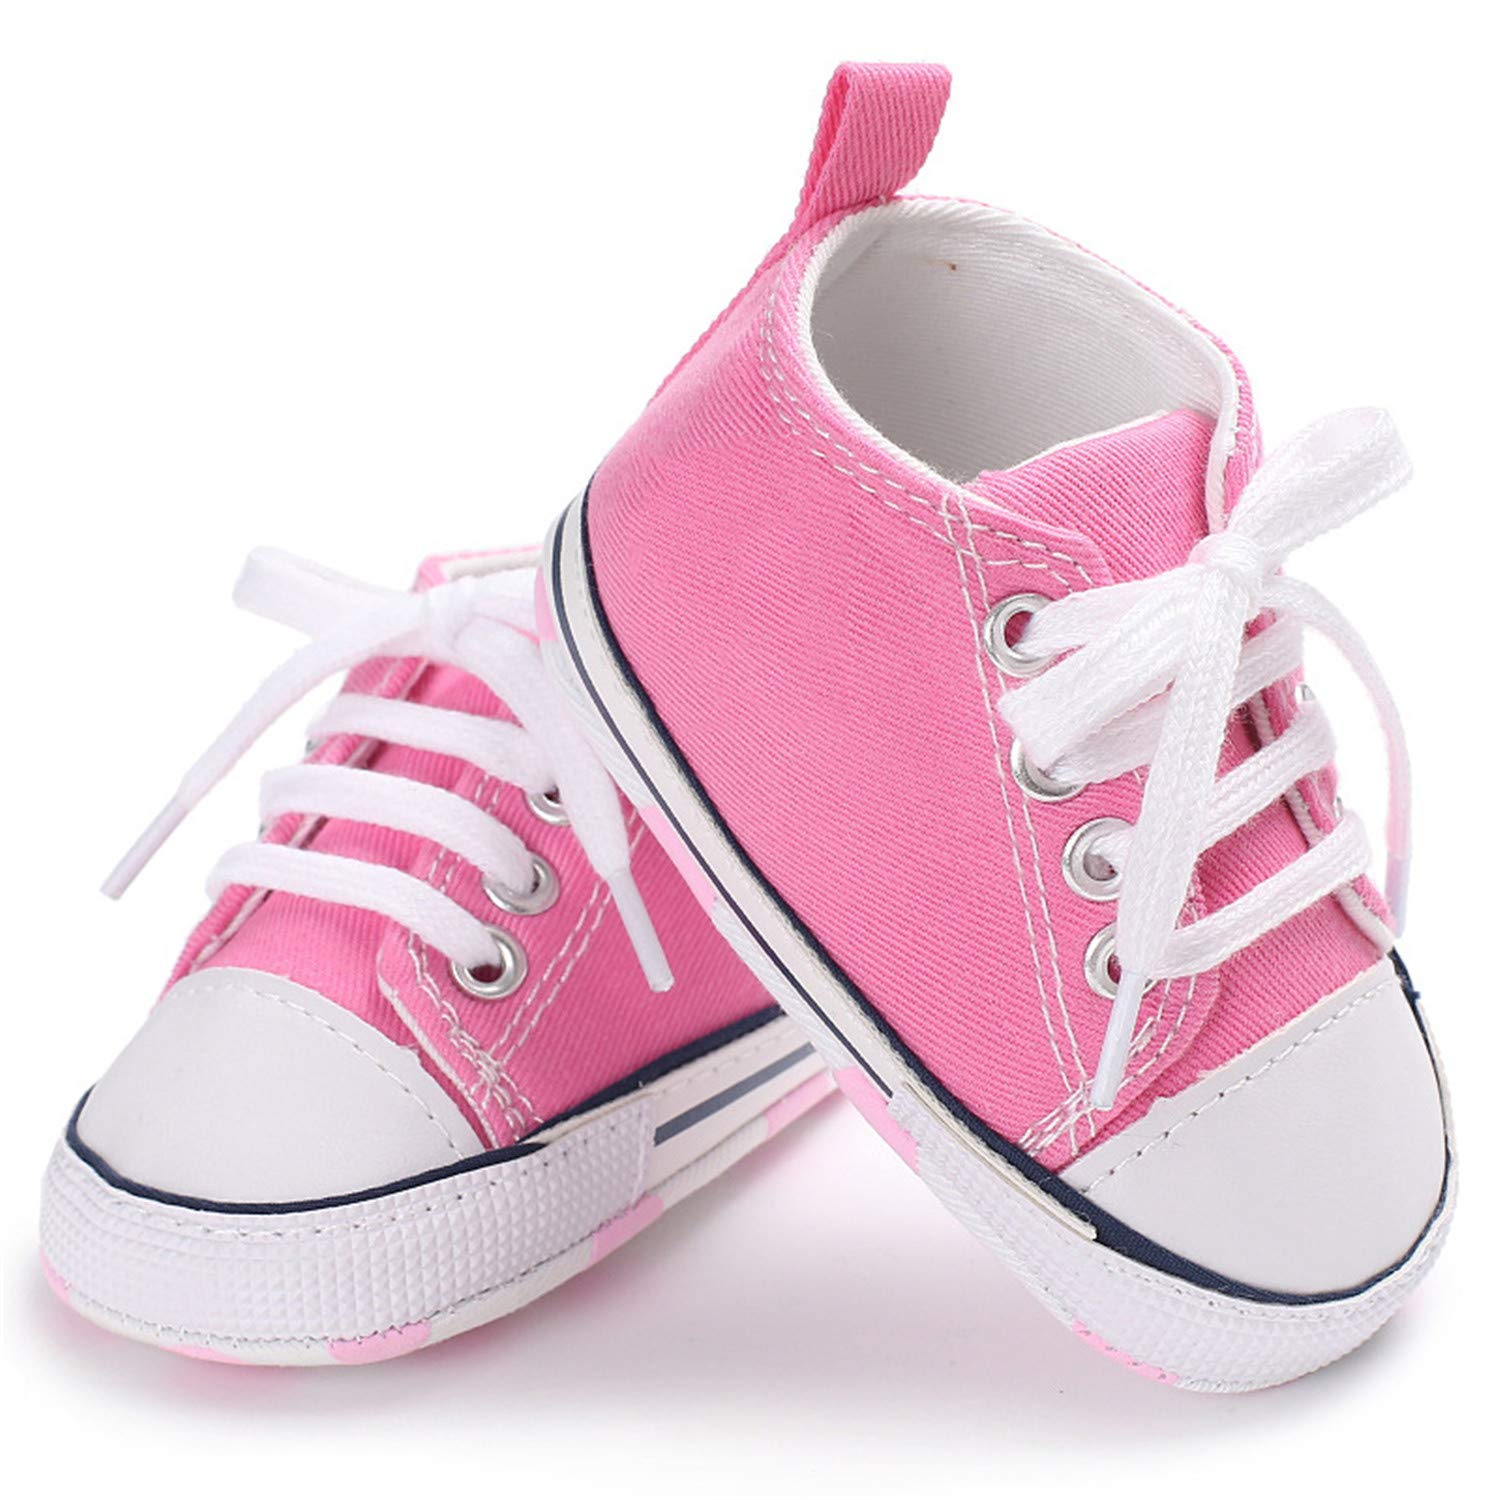 New Canvas Baby Sneaker Sport Shoes for Girls Boys Newborn Shoes Baby Walker First Walkers